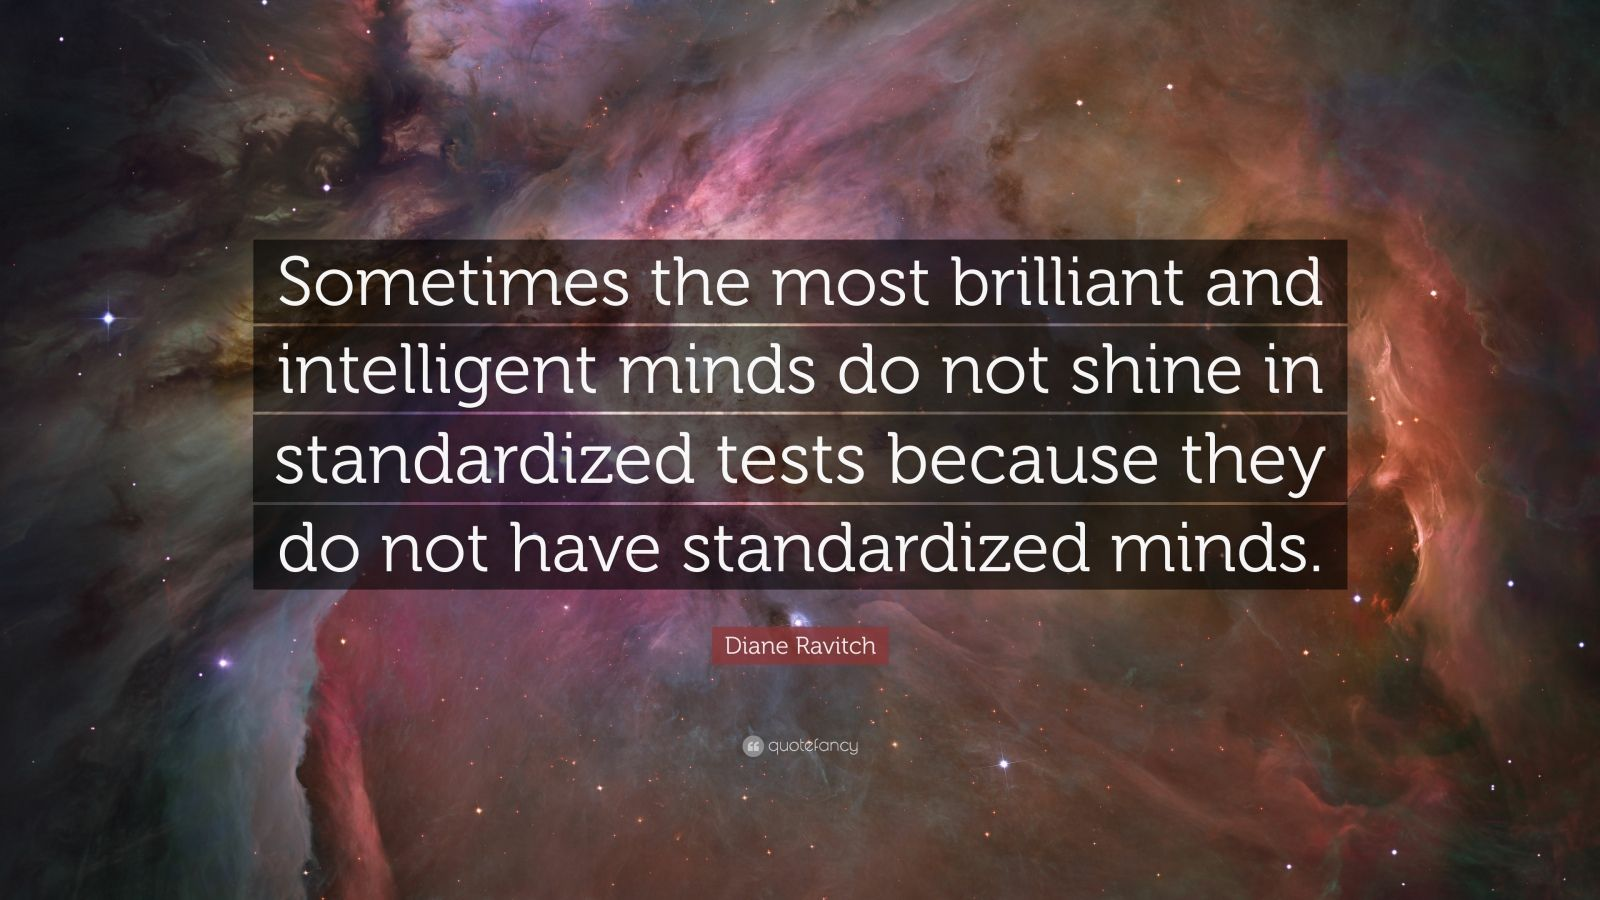 """Diane Ravitch Quote: """"Sometimes the most brilliant and intelligent minds do not shine in standardized tests because they do not have standardized minds."""""""